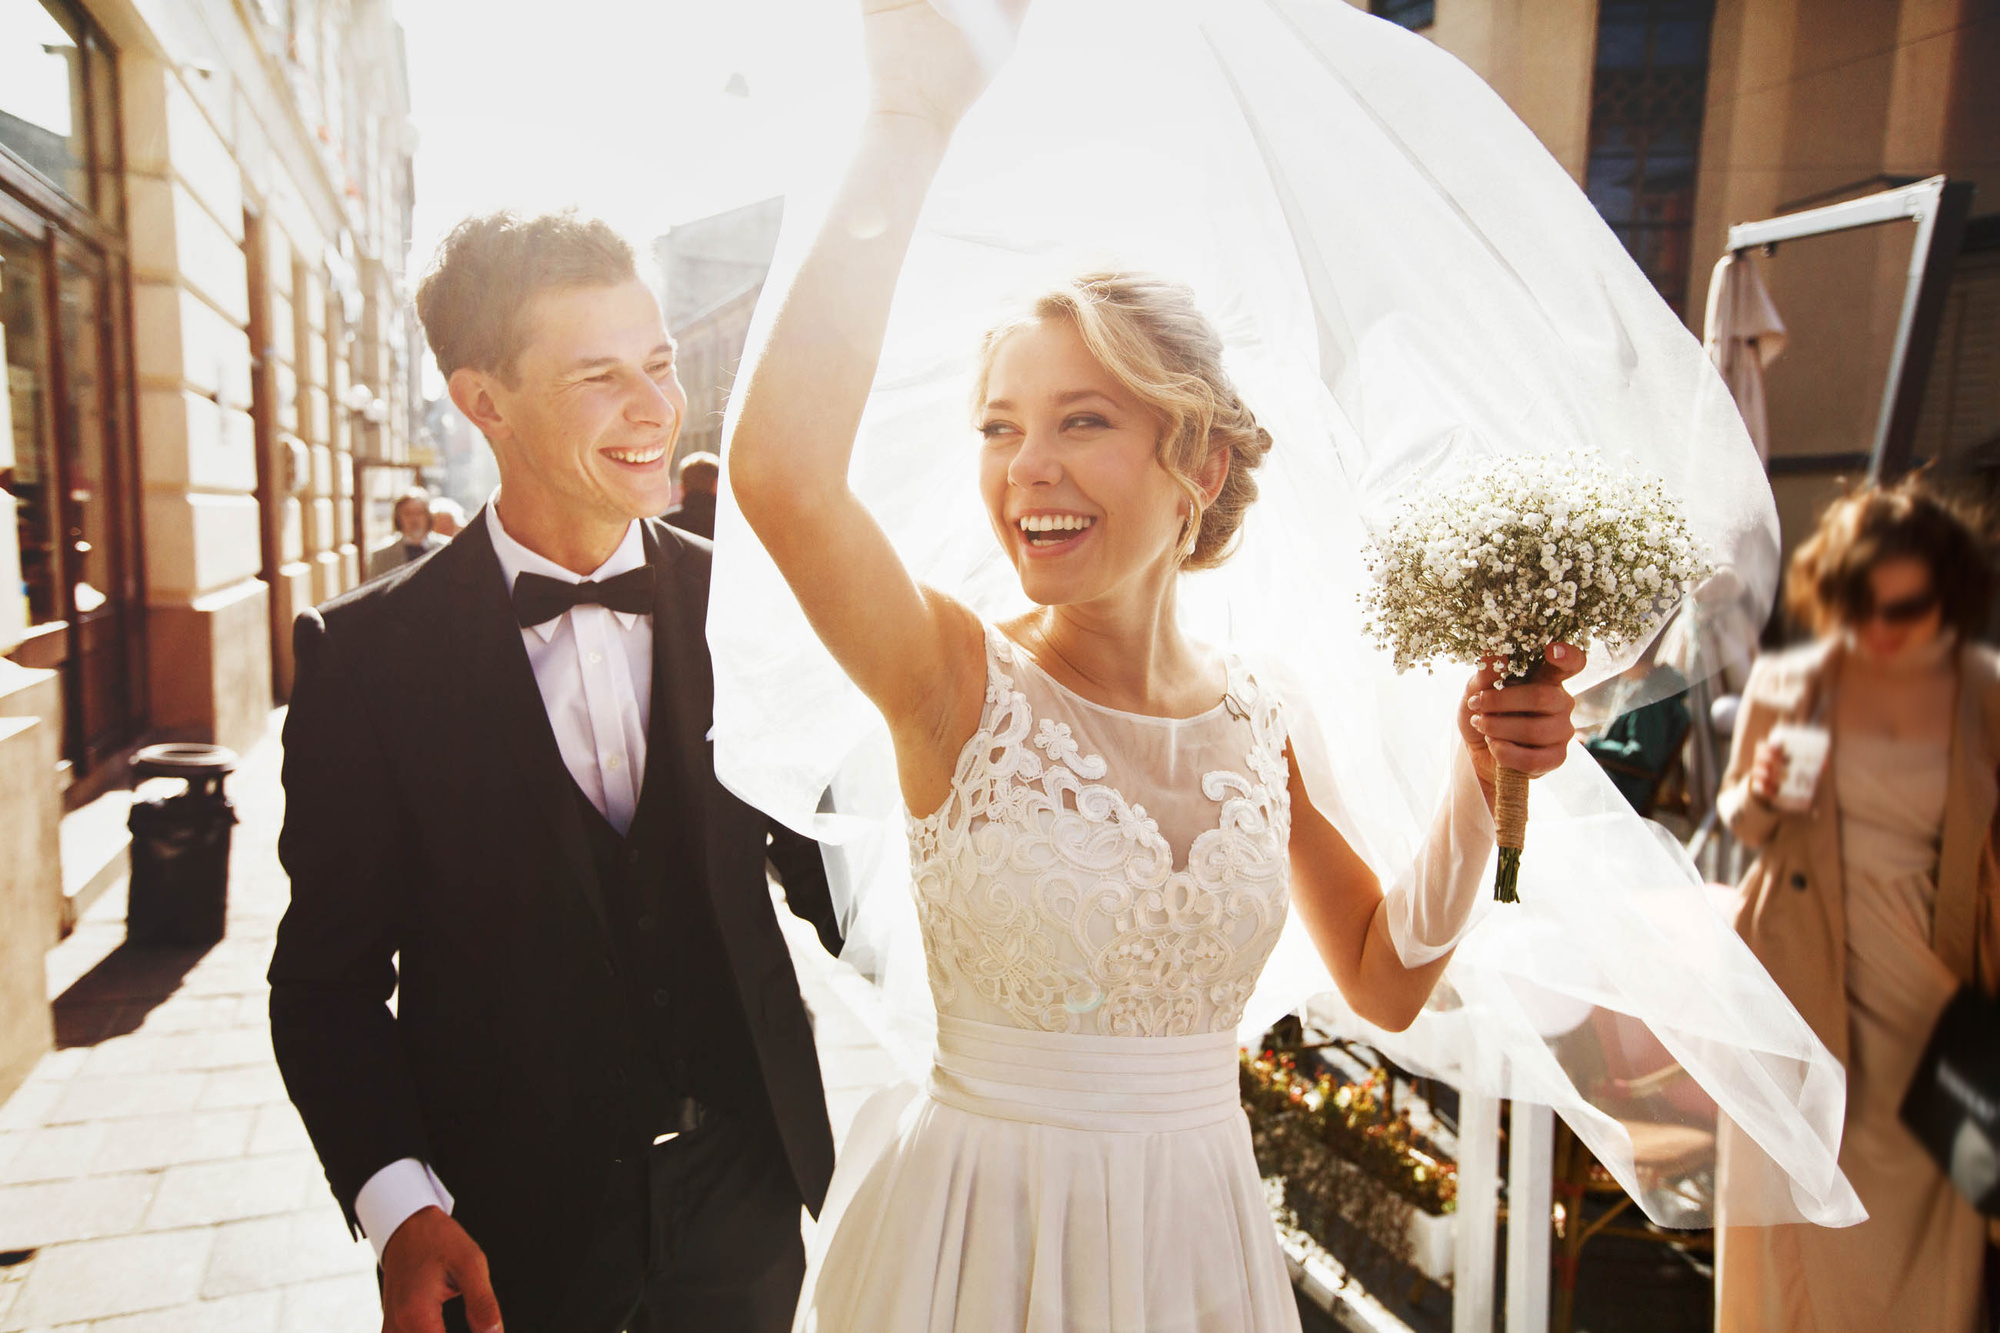 Things to Do Before a Wedding